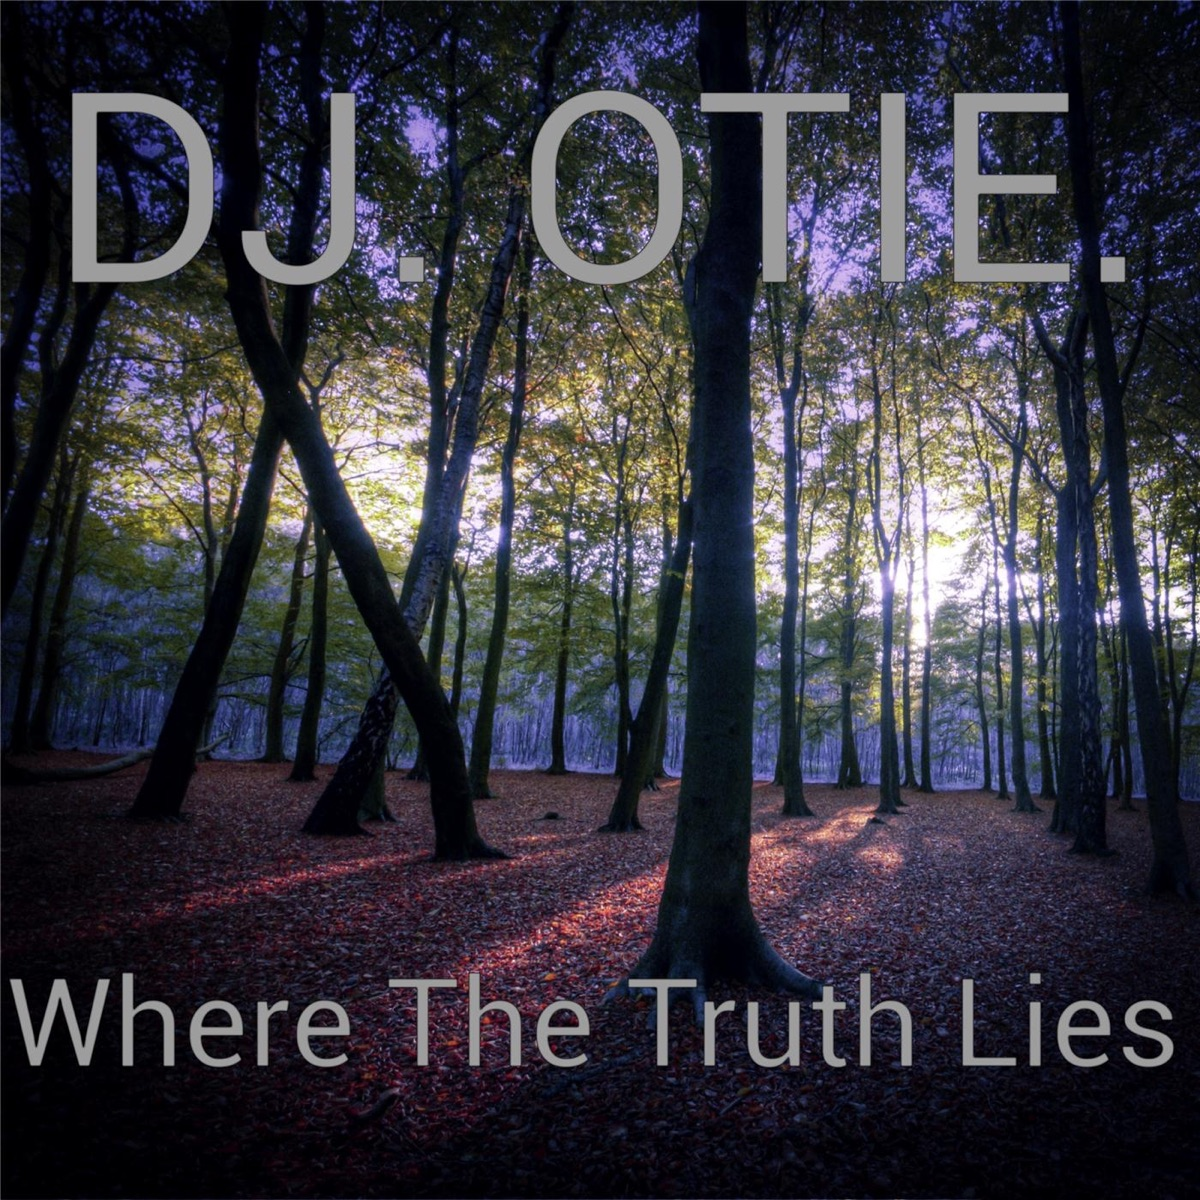 Where the Truth Lies EP DJ Otie CD cover